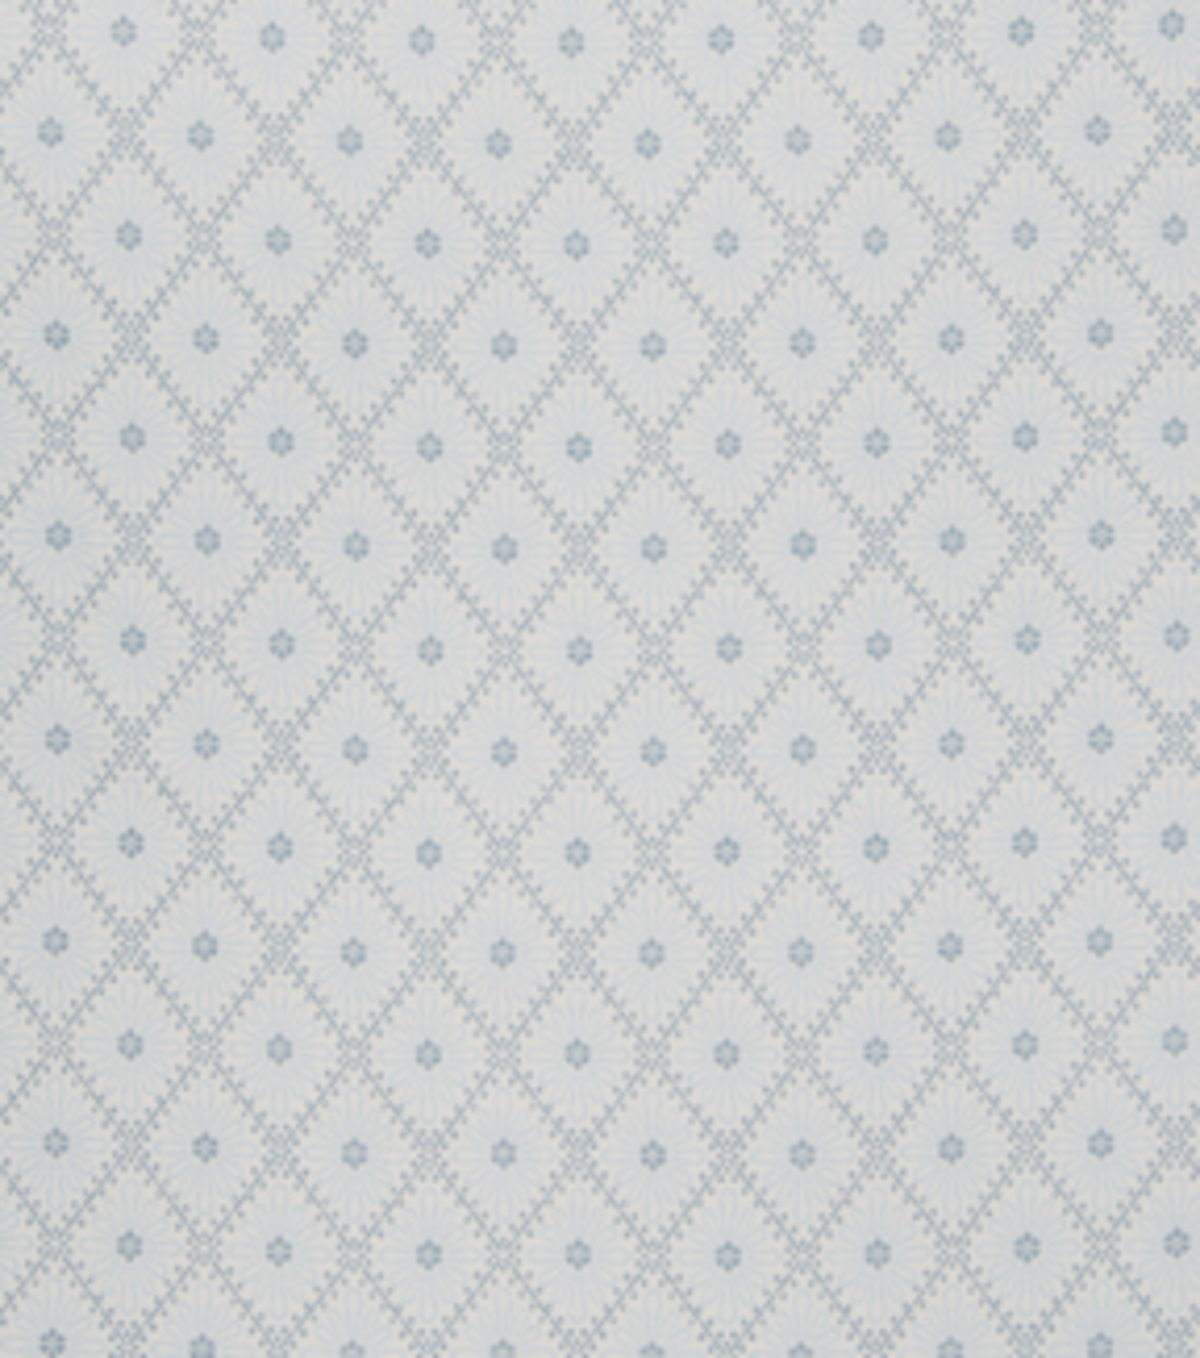 Home Decor 8\u0022x8\u0022 Fabric Swatch-French General Decade Bleu